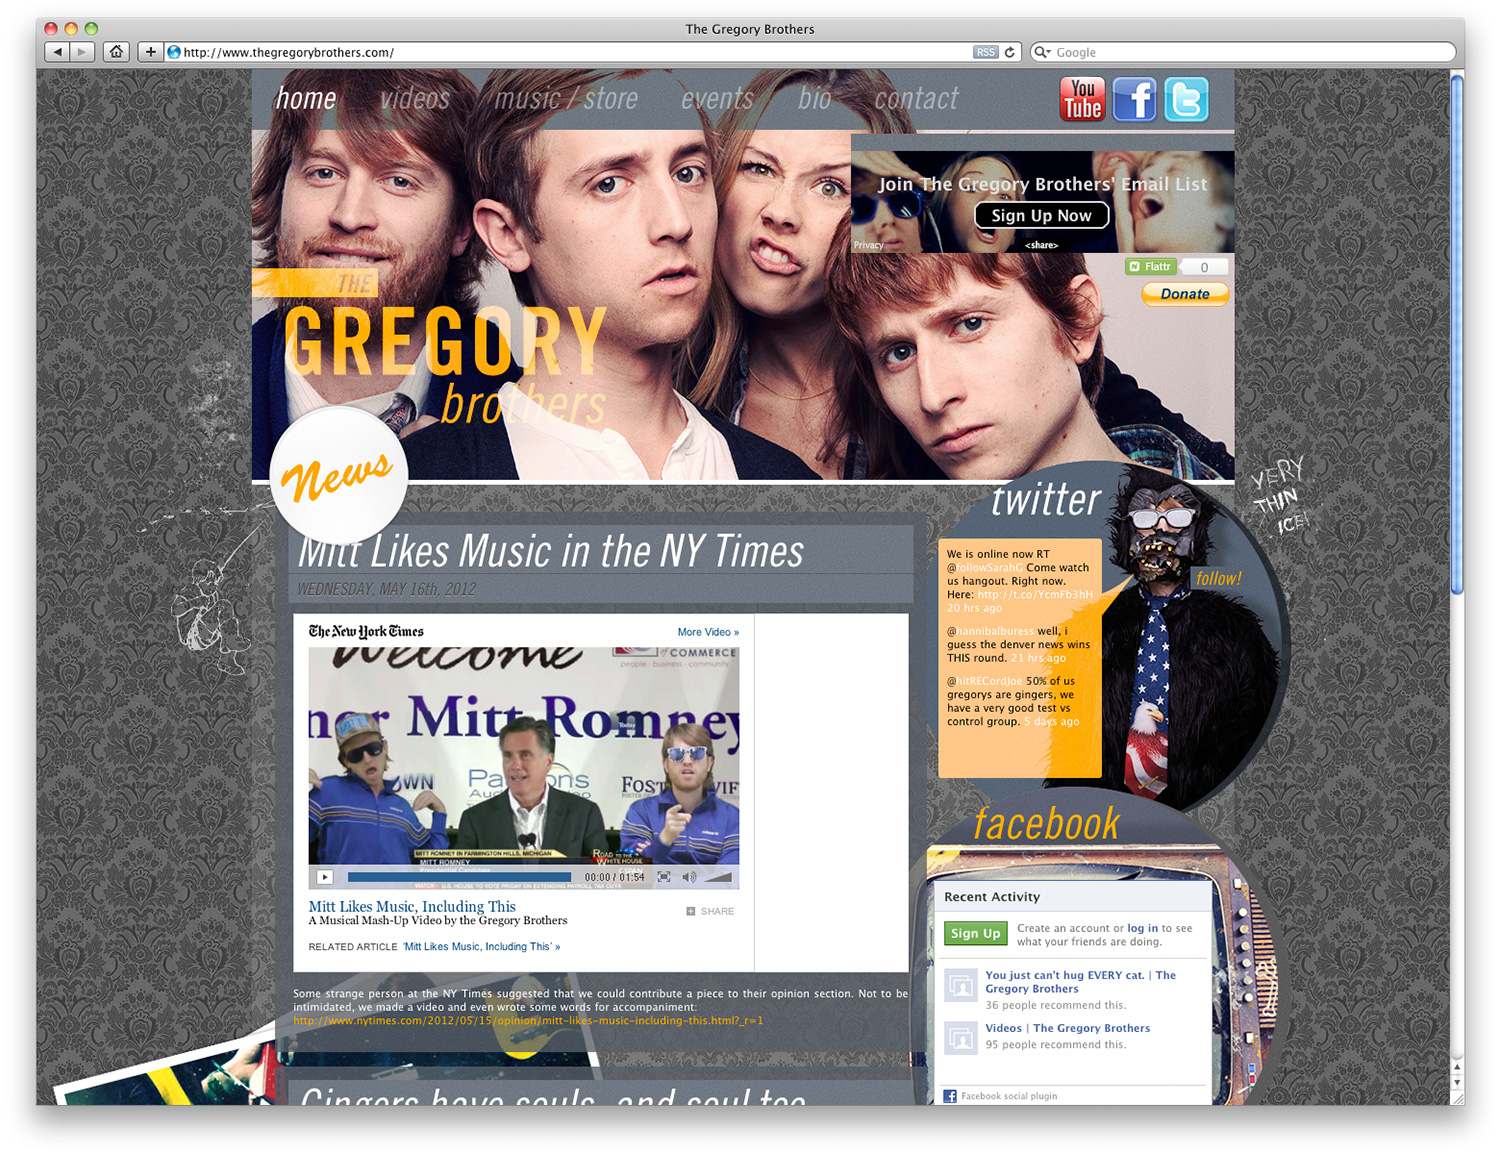 The Gregory Brothers' website www.thegregorybrothers.com.